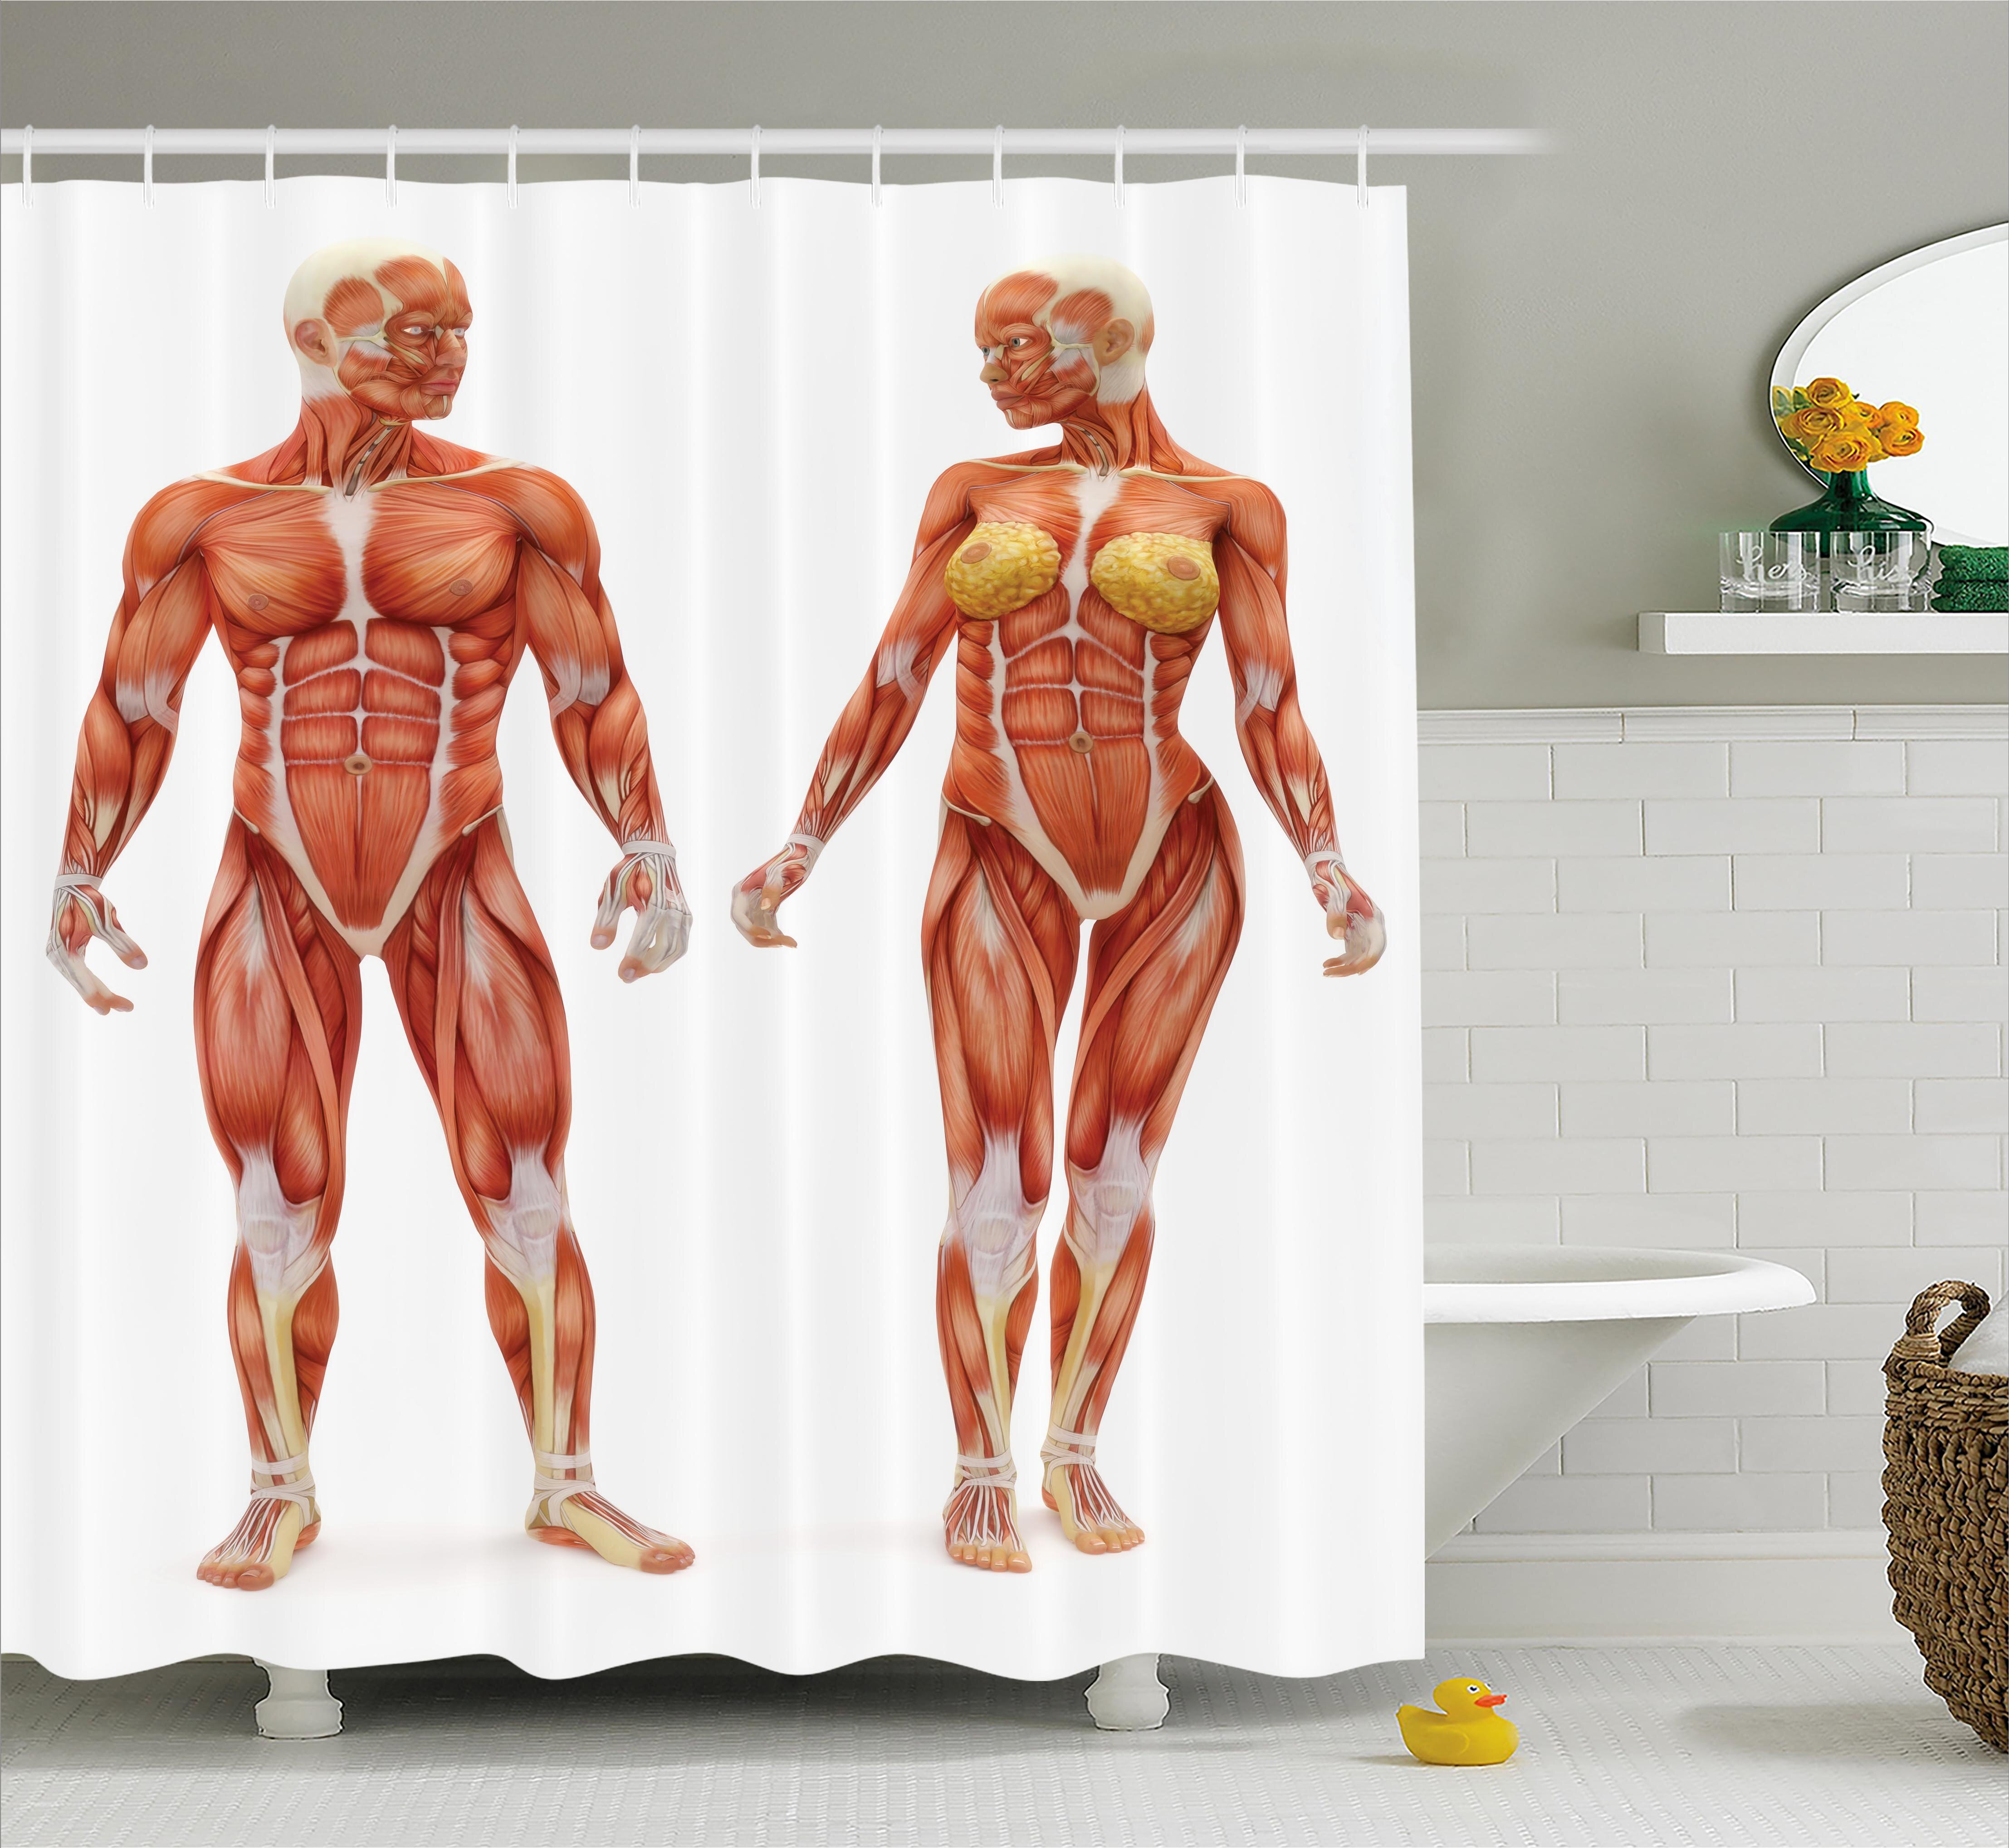 Ambesonne Human Anatomy Male And Female Bodies With Inner Mass Build